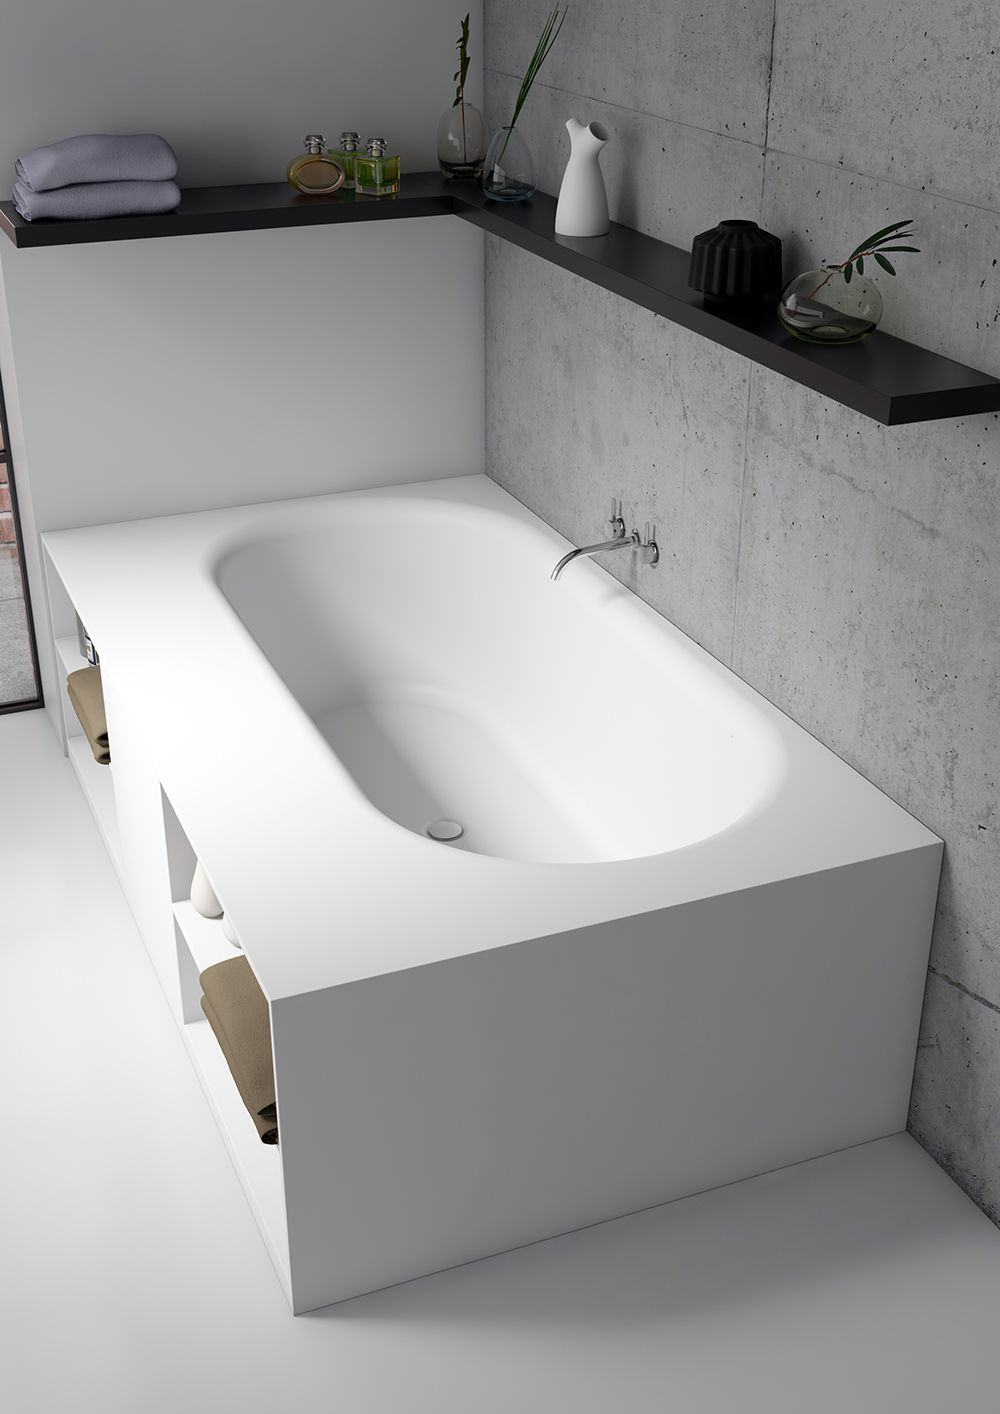 RIHO Burgos bathtub in Solid Surface | Solid Surface - Bathroom ...